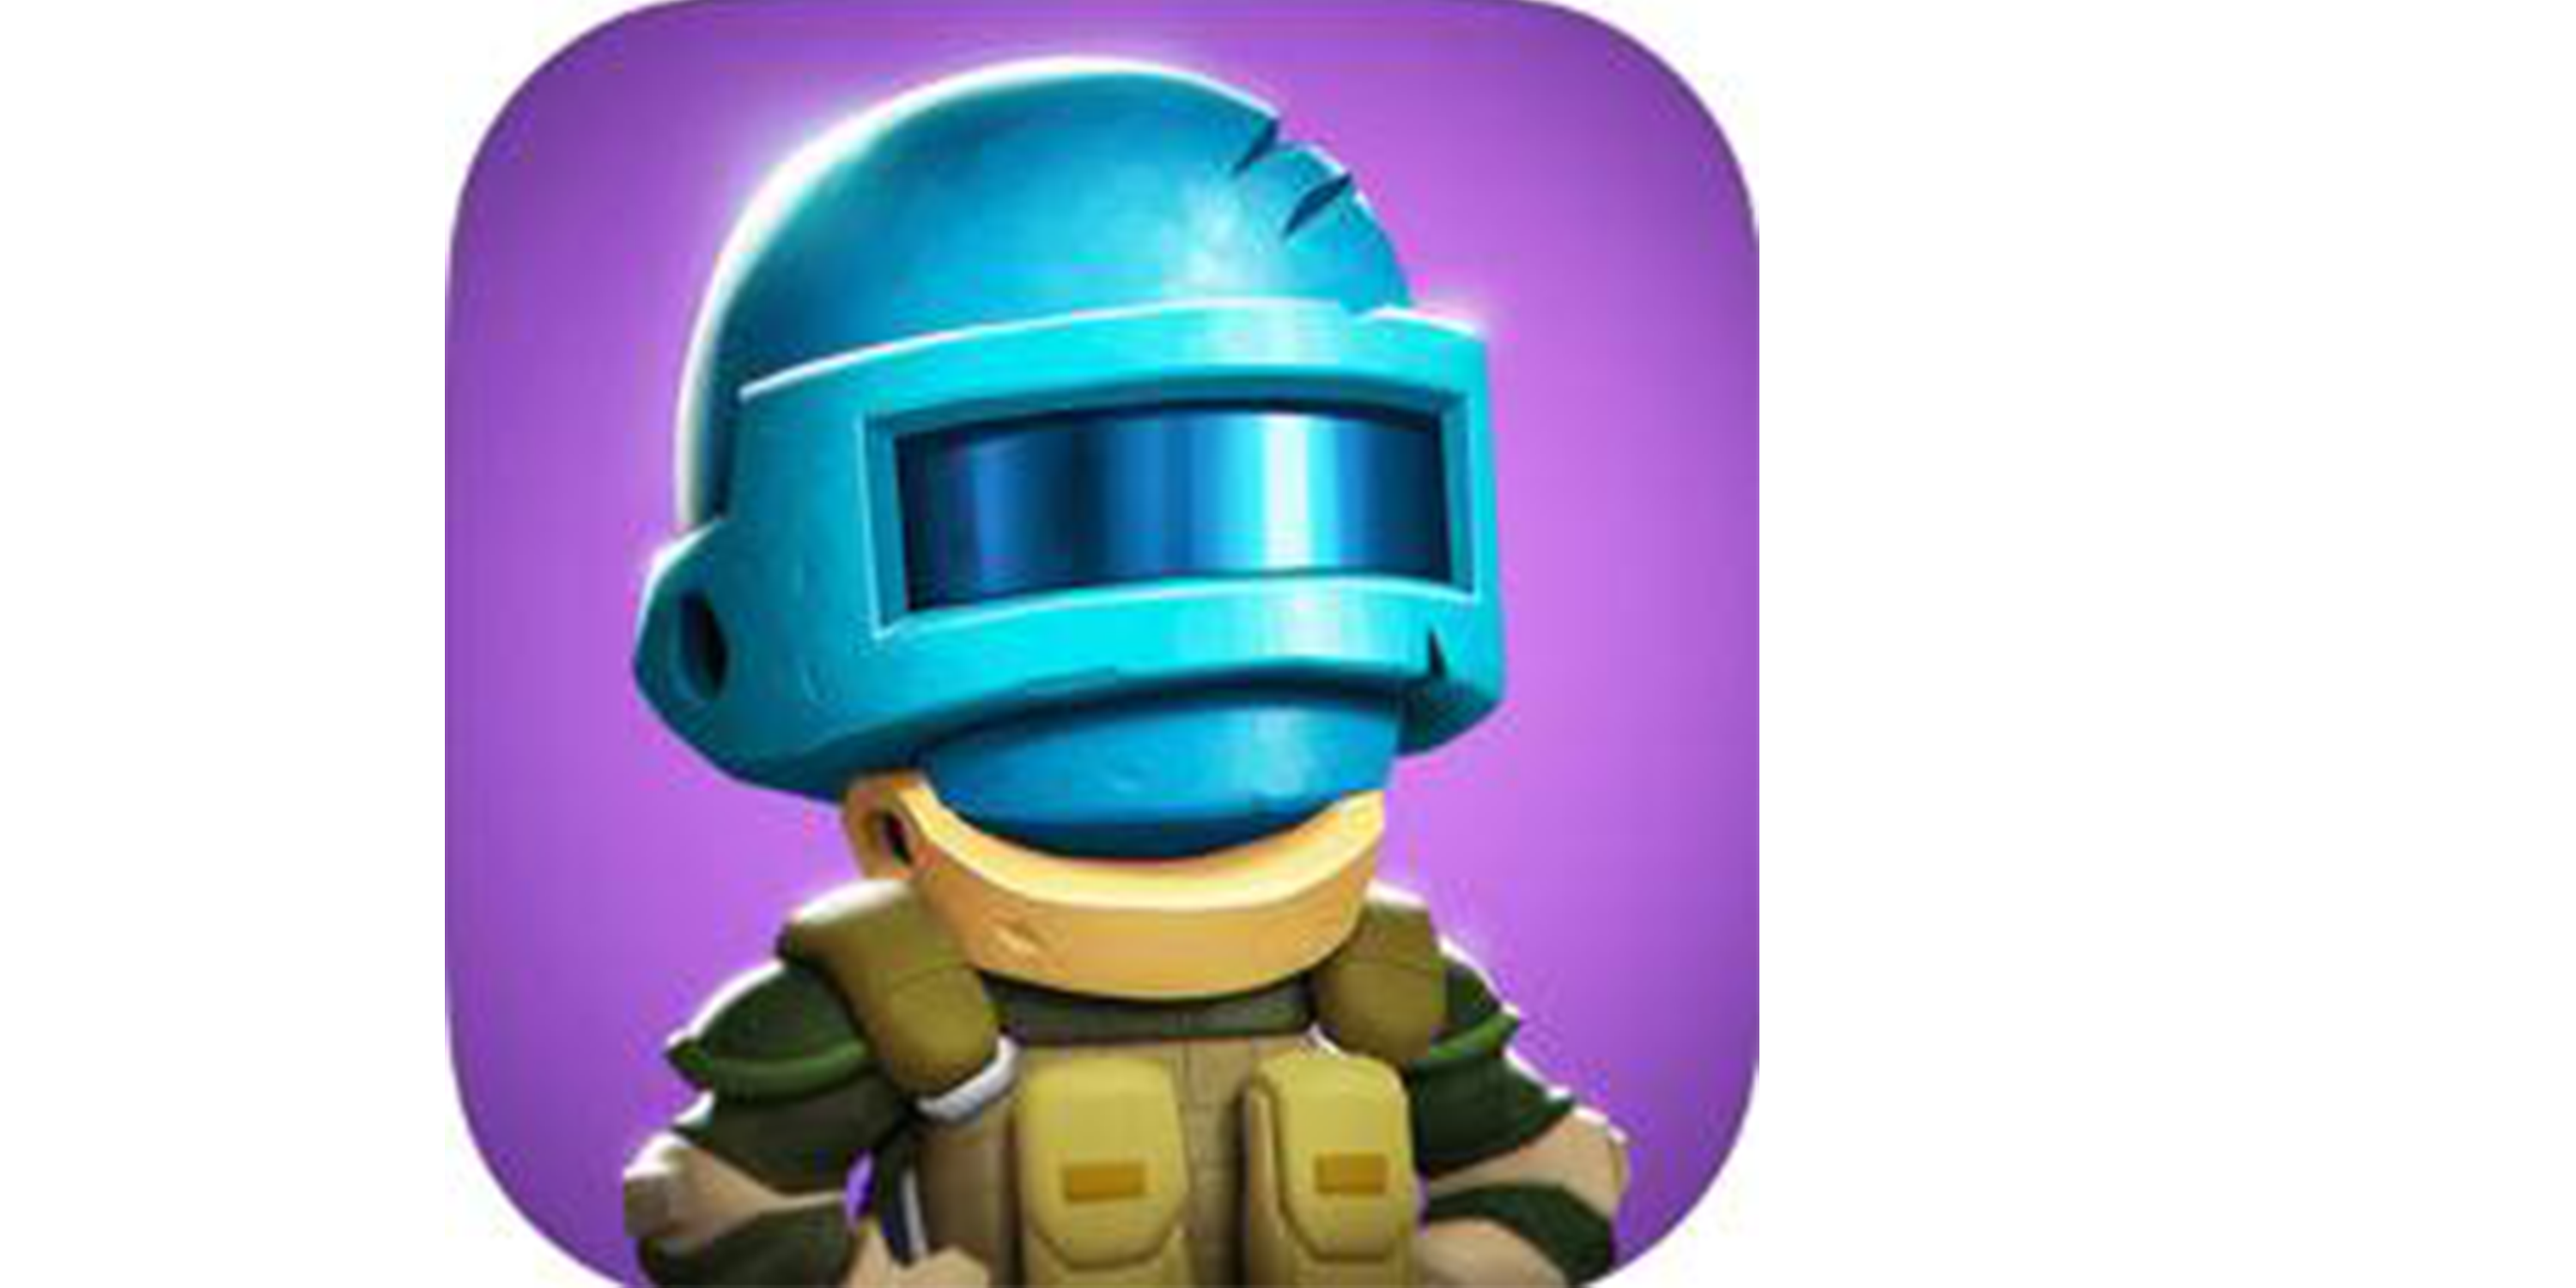 app icon badge with figure wearing helmet and armor suit